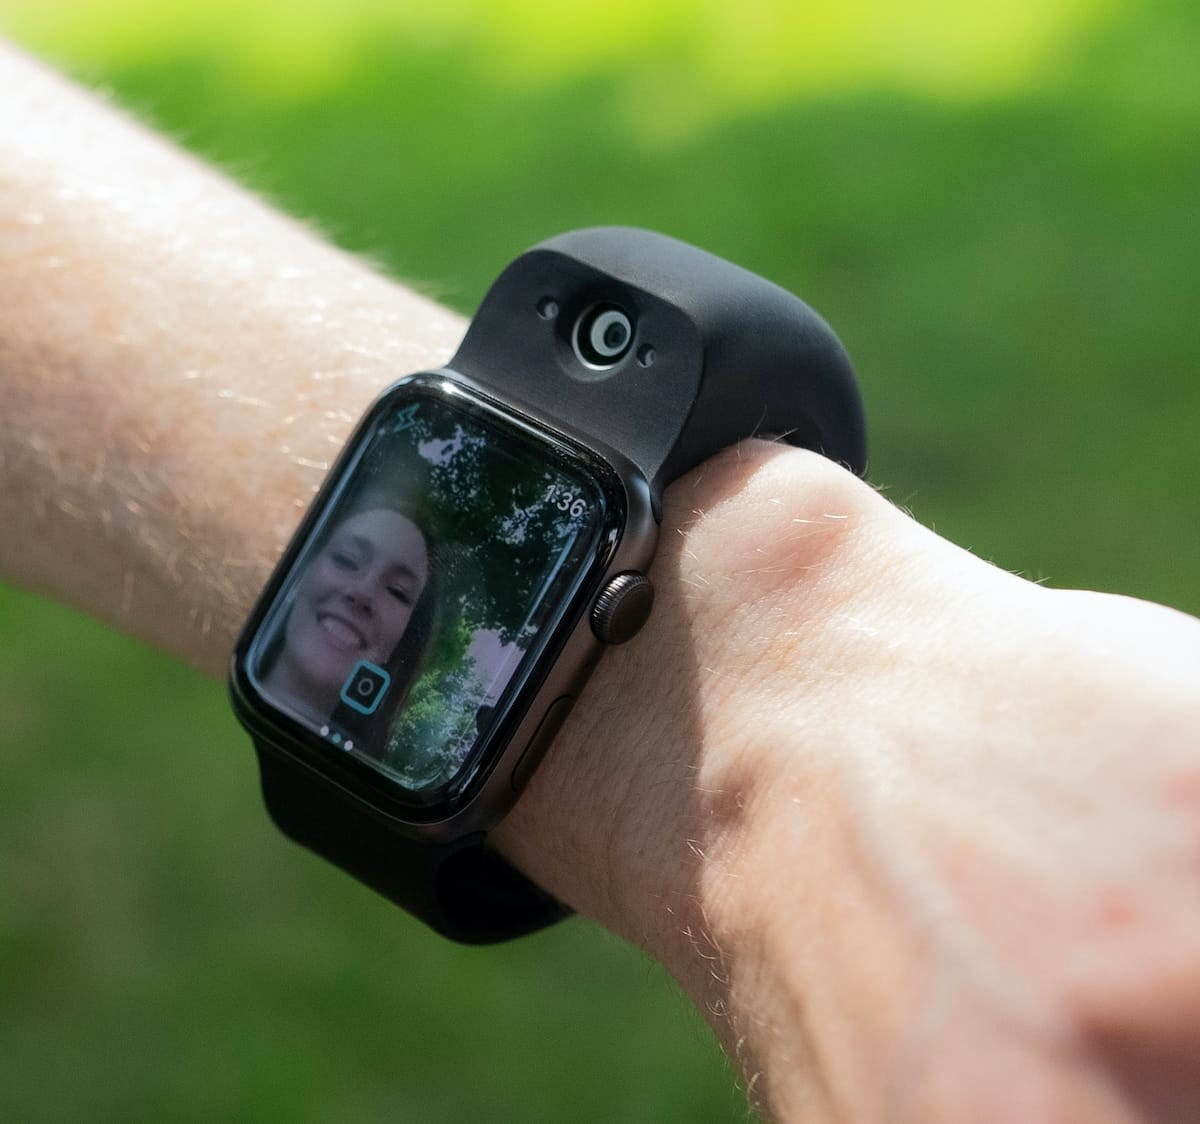 Wristcam wearable wrist camera attachment connects to an Apple Watch to take photos